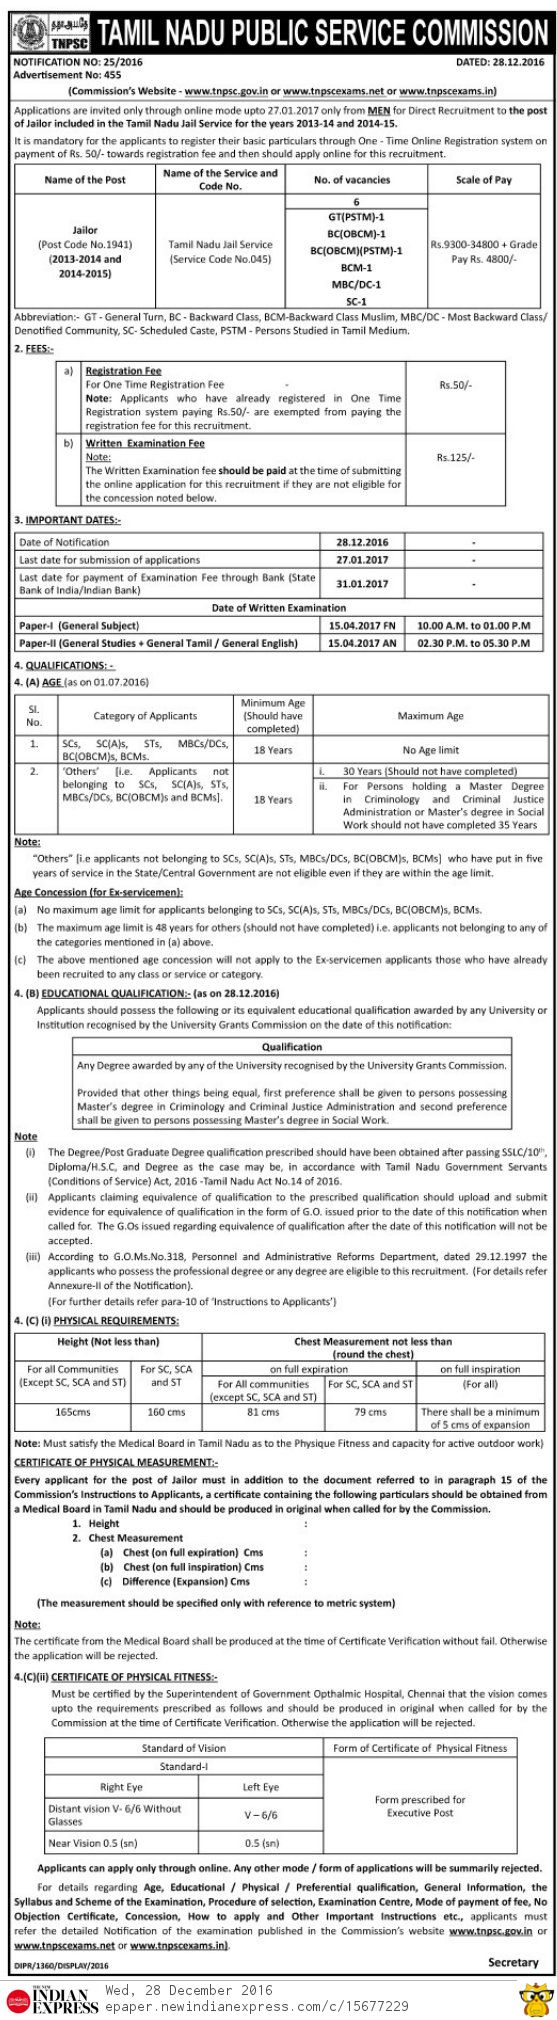 Physical Fitness Certificate Format For Tamilnadu Government Job Pdf